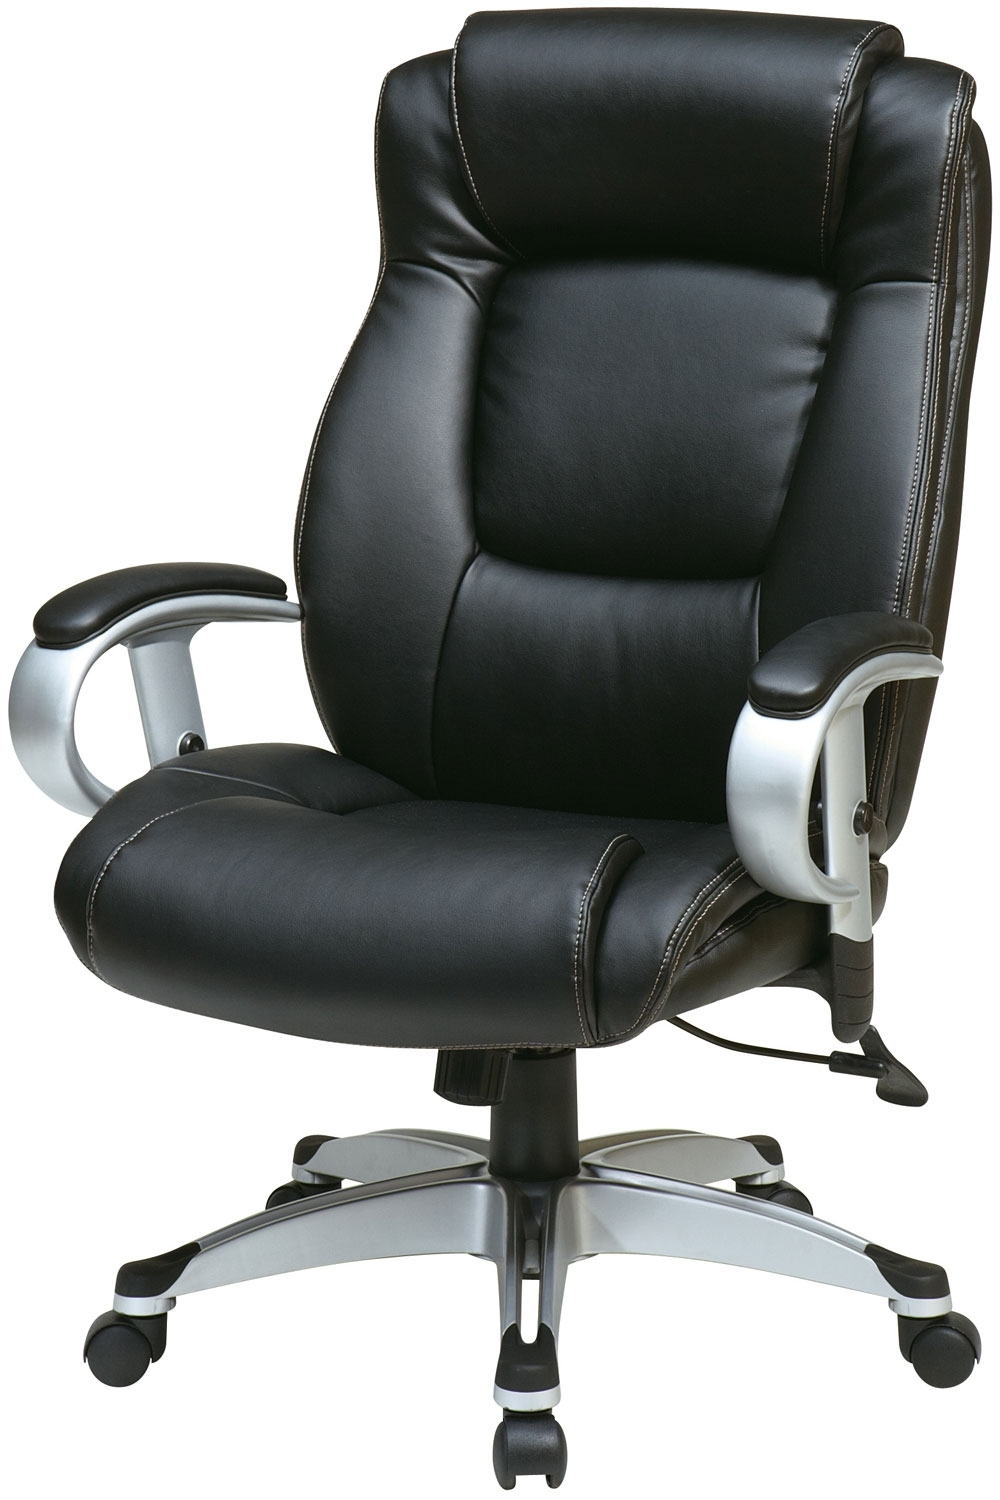 Executive Desk Chair Without Arms For Most Recent Ech52666 Ec3 Office Star – Executive Black Eco Leather Chair With (View 6 of 20)